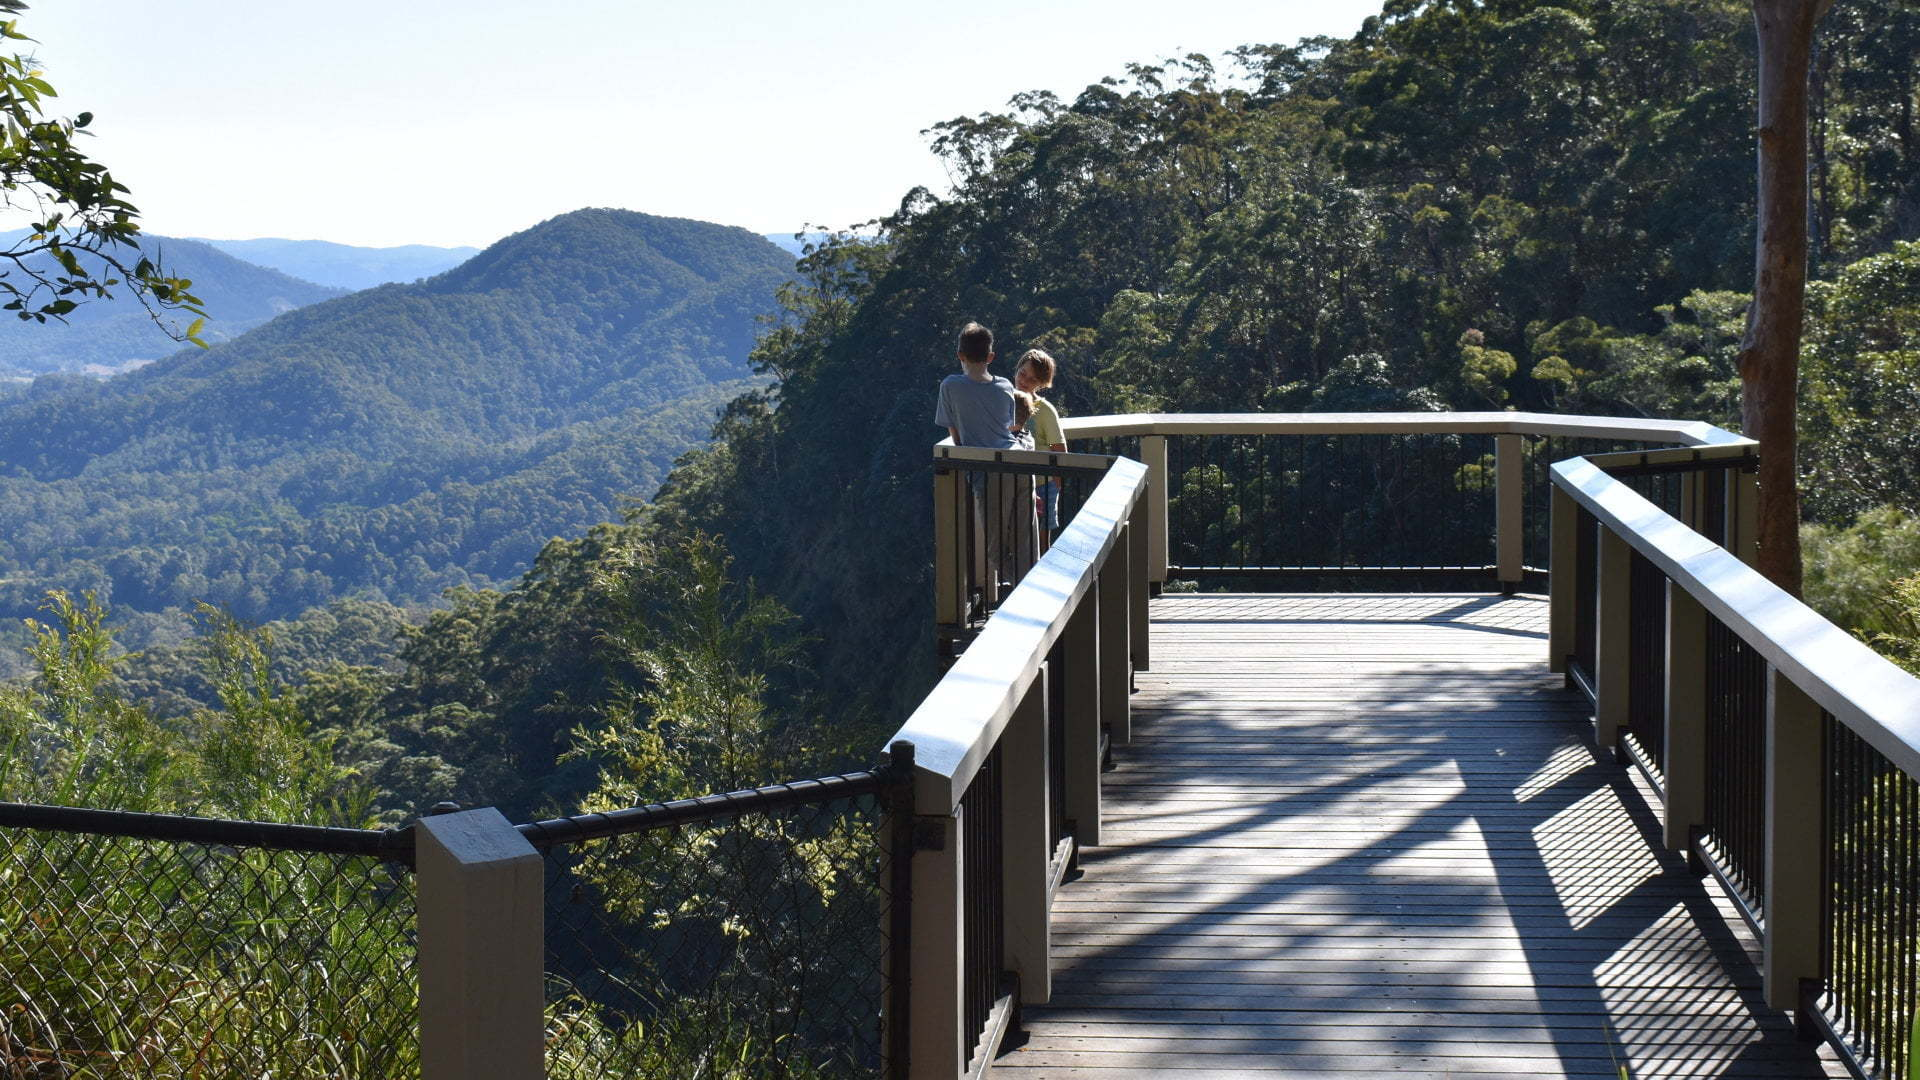 Viewing platform at the Mapleton Falls National Park